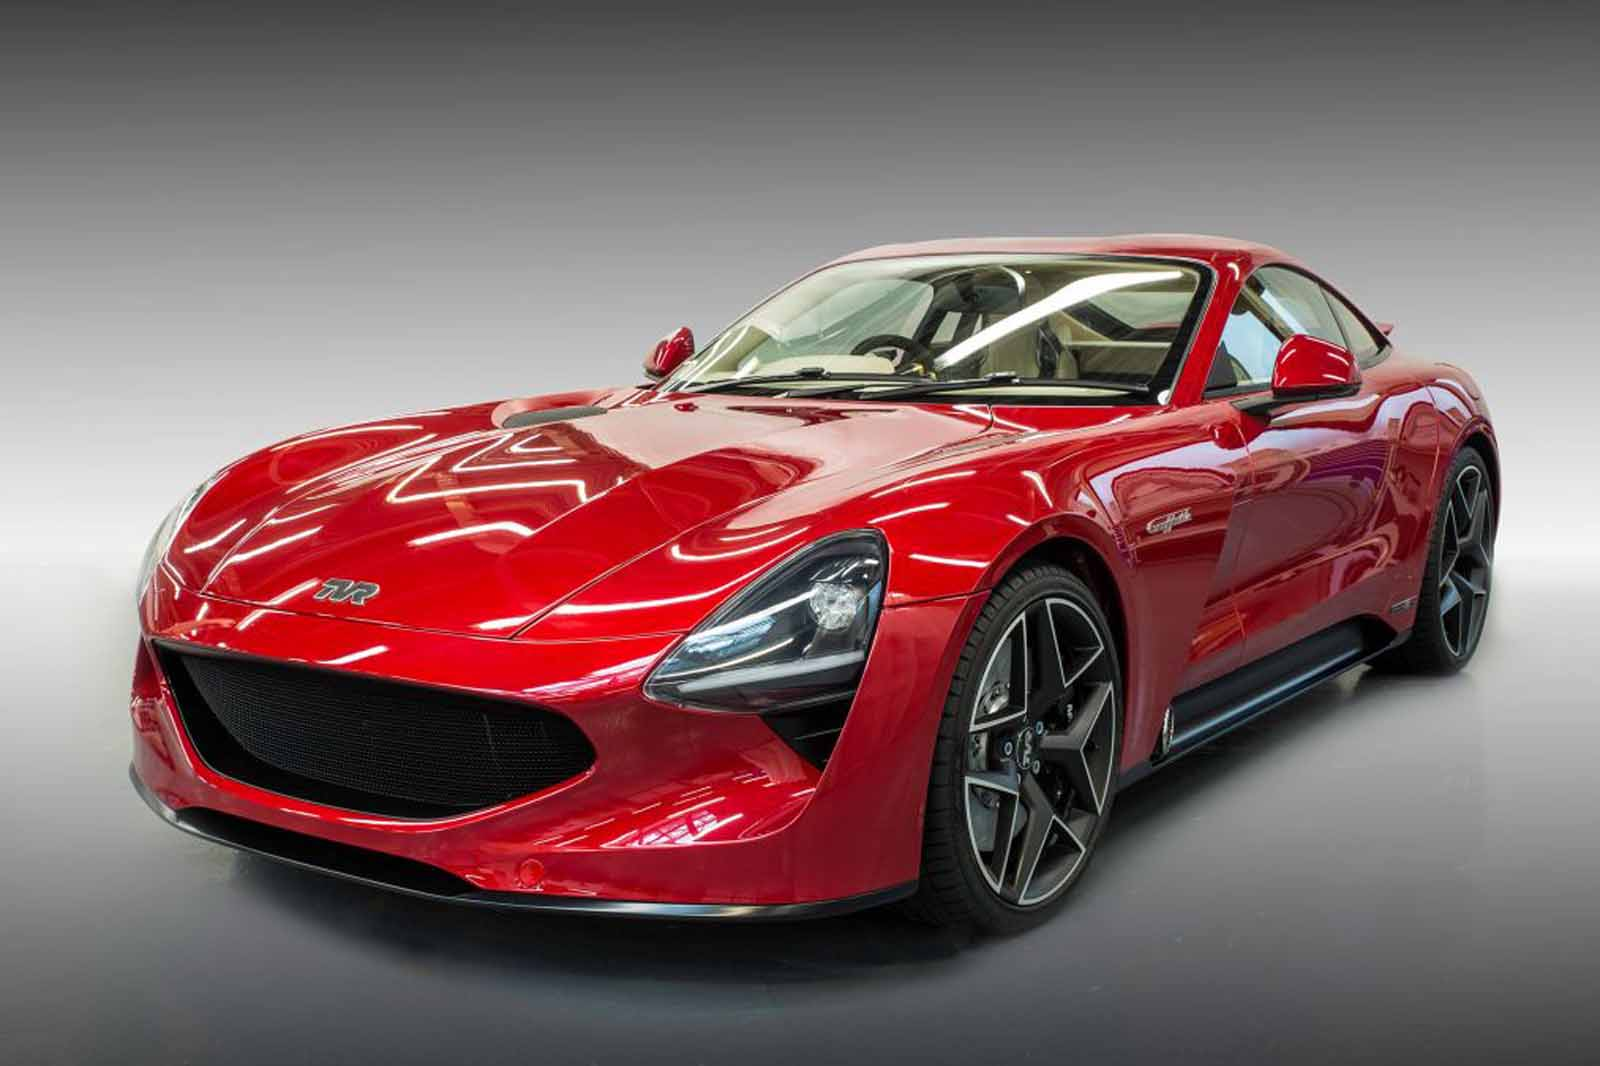 new tvr griffith has a cosworth tuned v8 and will do 200 mph news. Black Bedroom Furniture Sets. Home Design Ideas